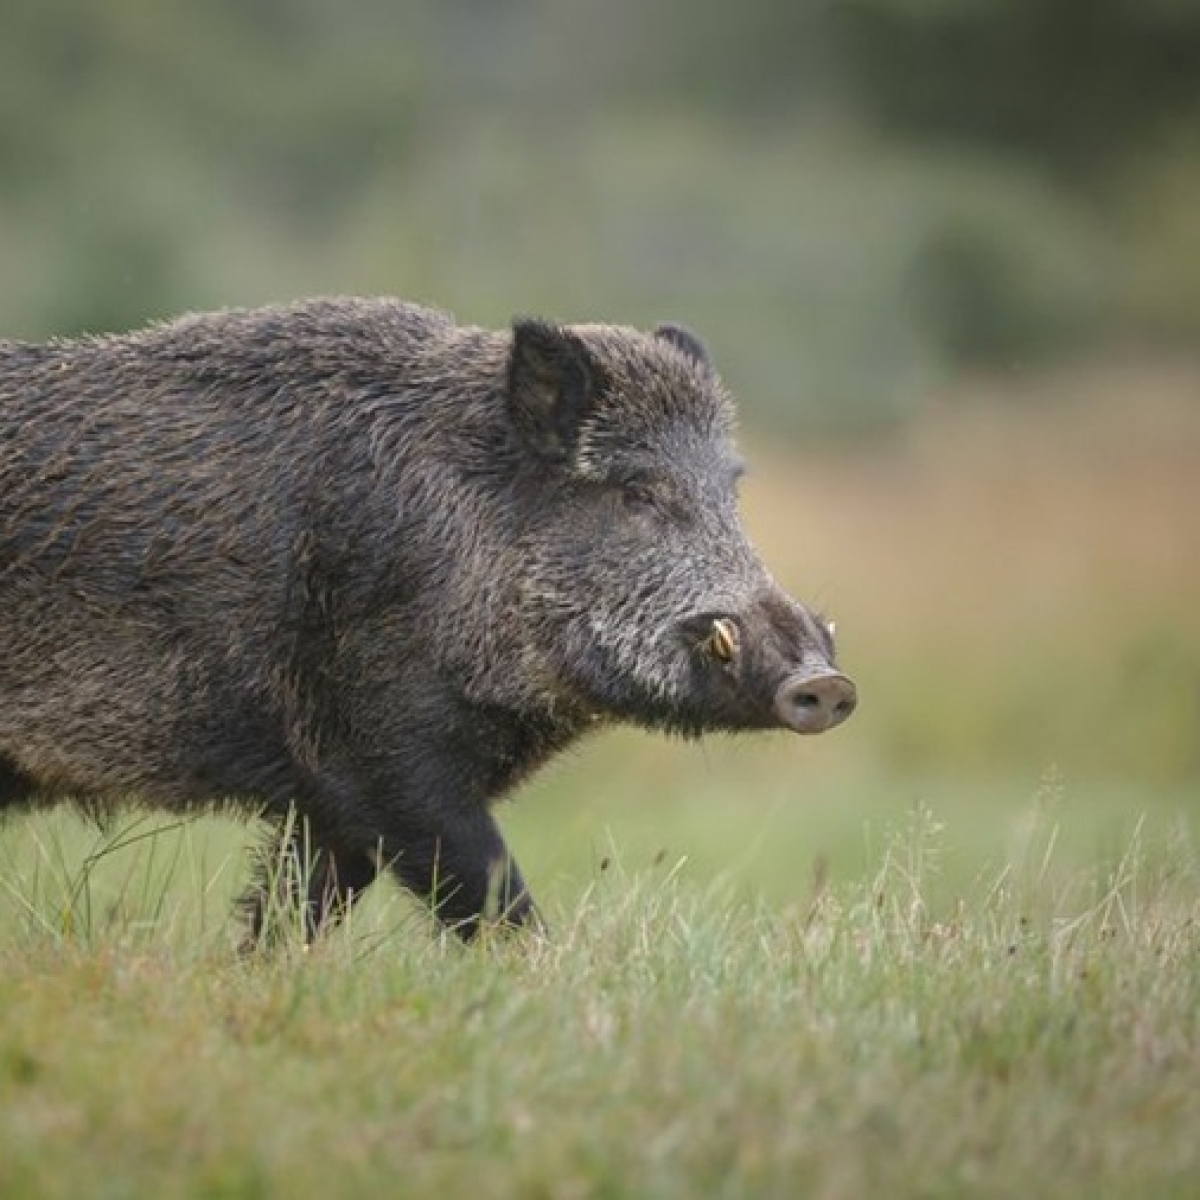 Wild boar eats cocaine worth Rs 15 lakh in Italy forest